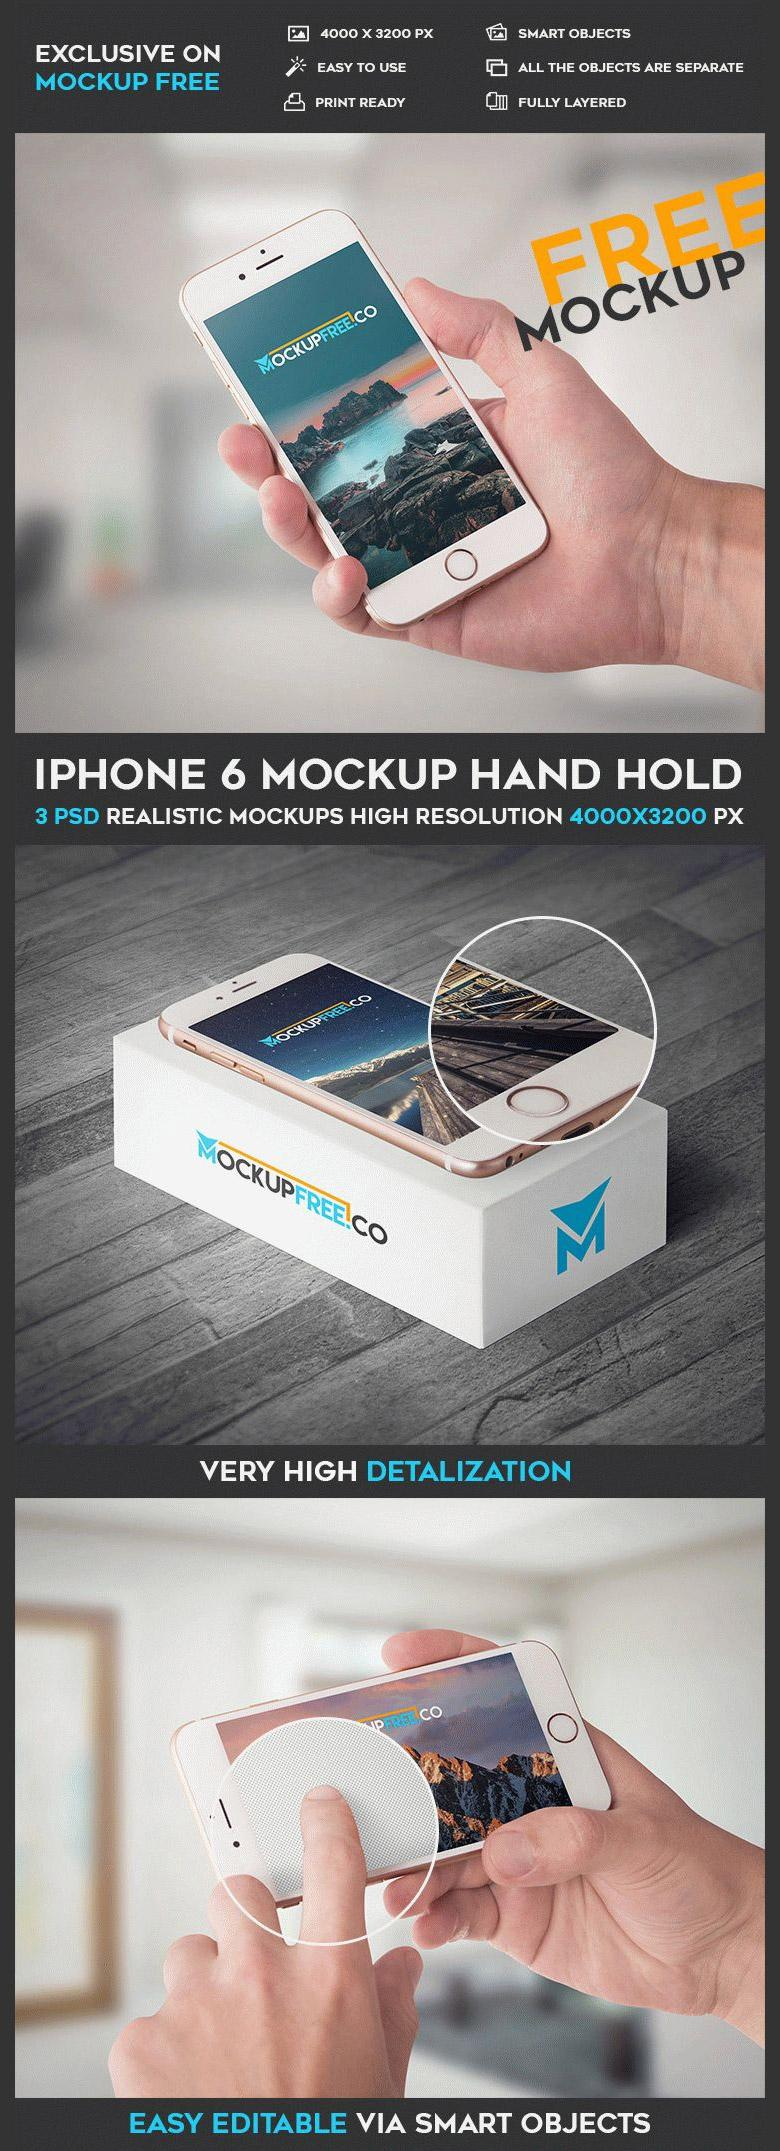 iPhone 6 Mockup Set